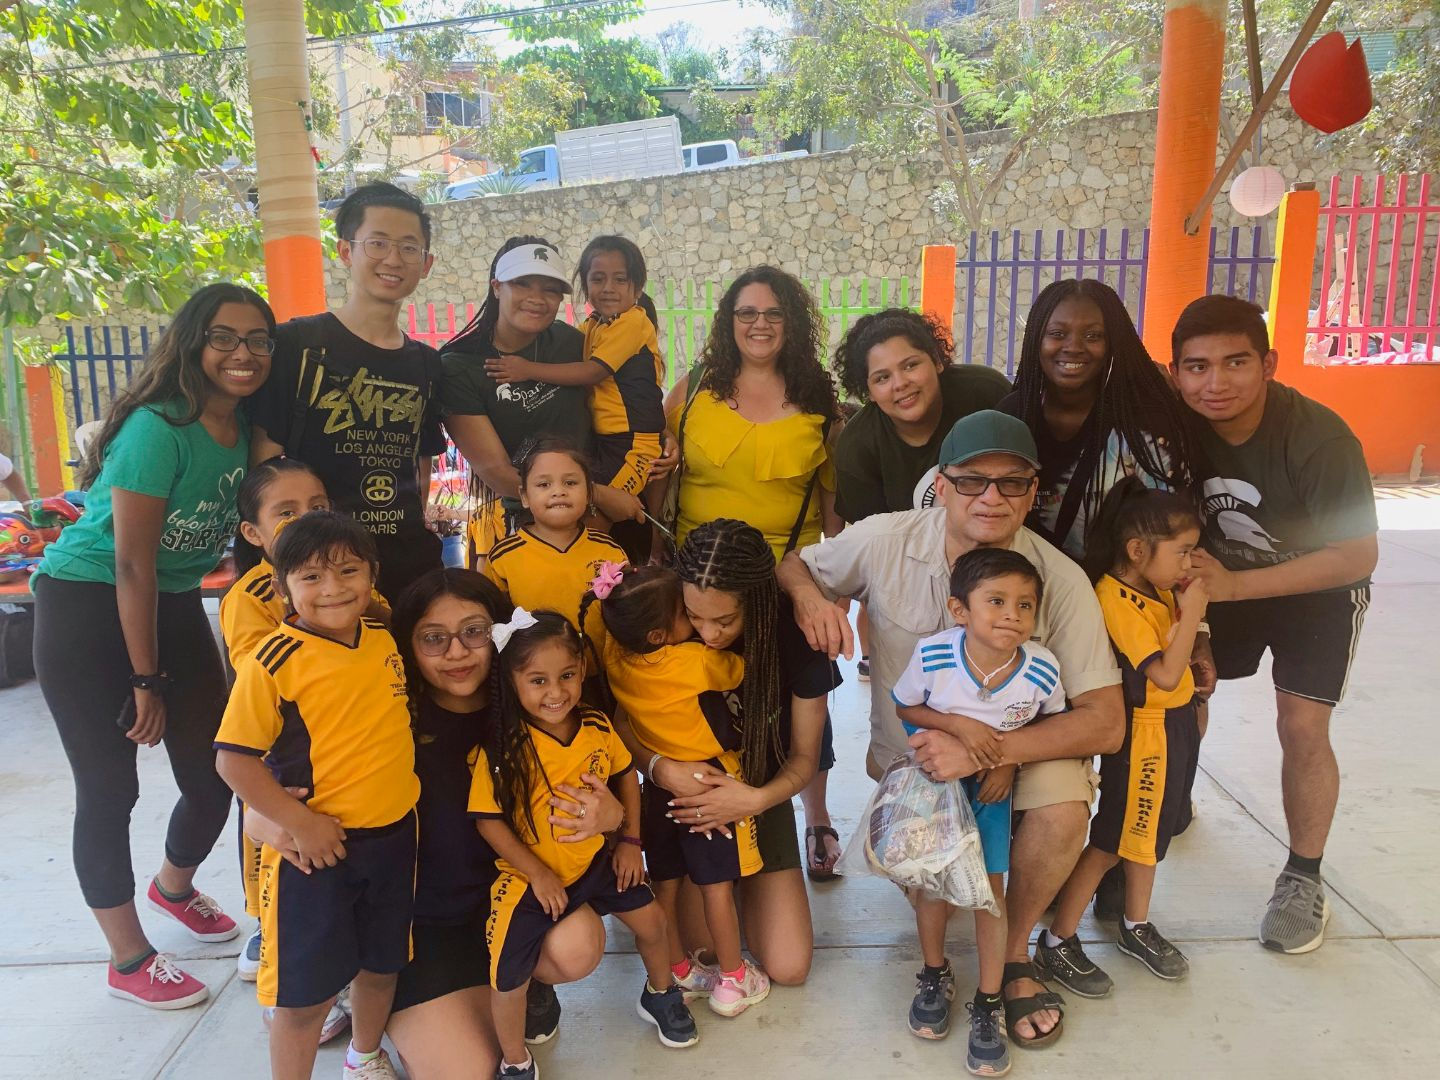 MSU students with local school children in Mexico